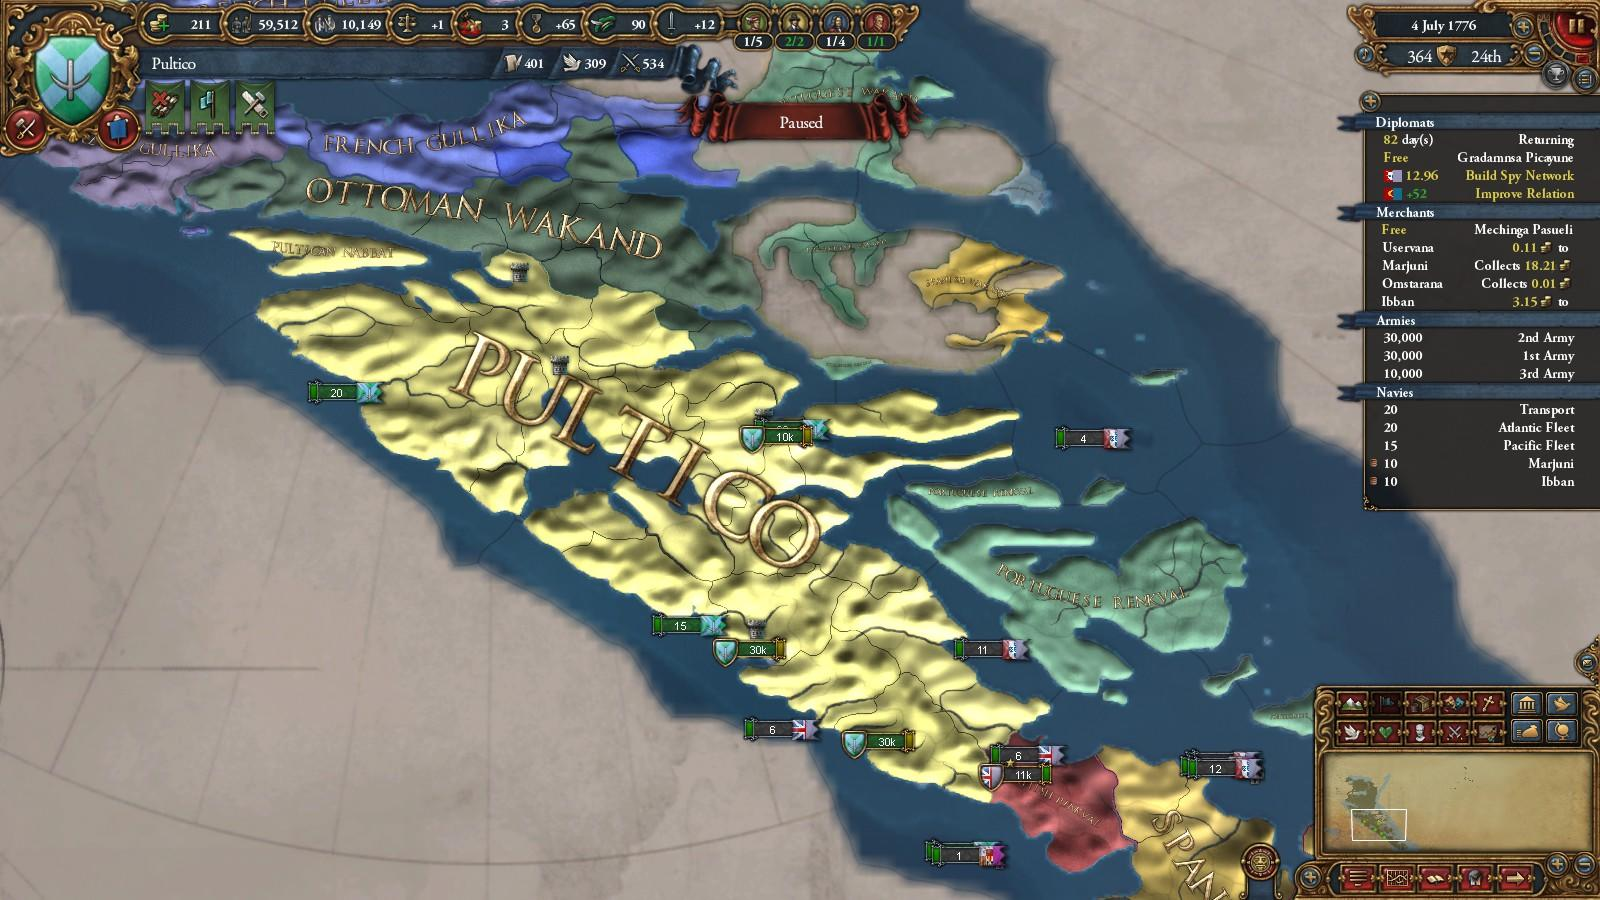 Europa Universalis, why no love 'round here? - SimHQ Forums